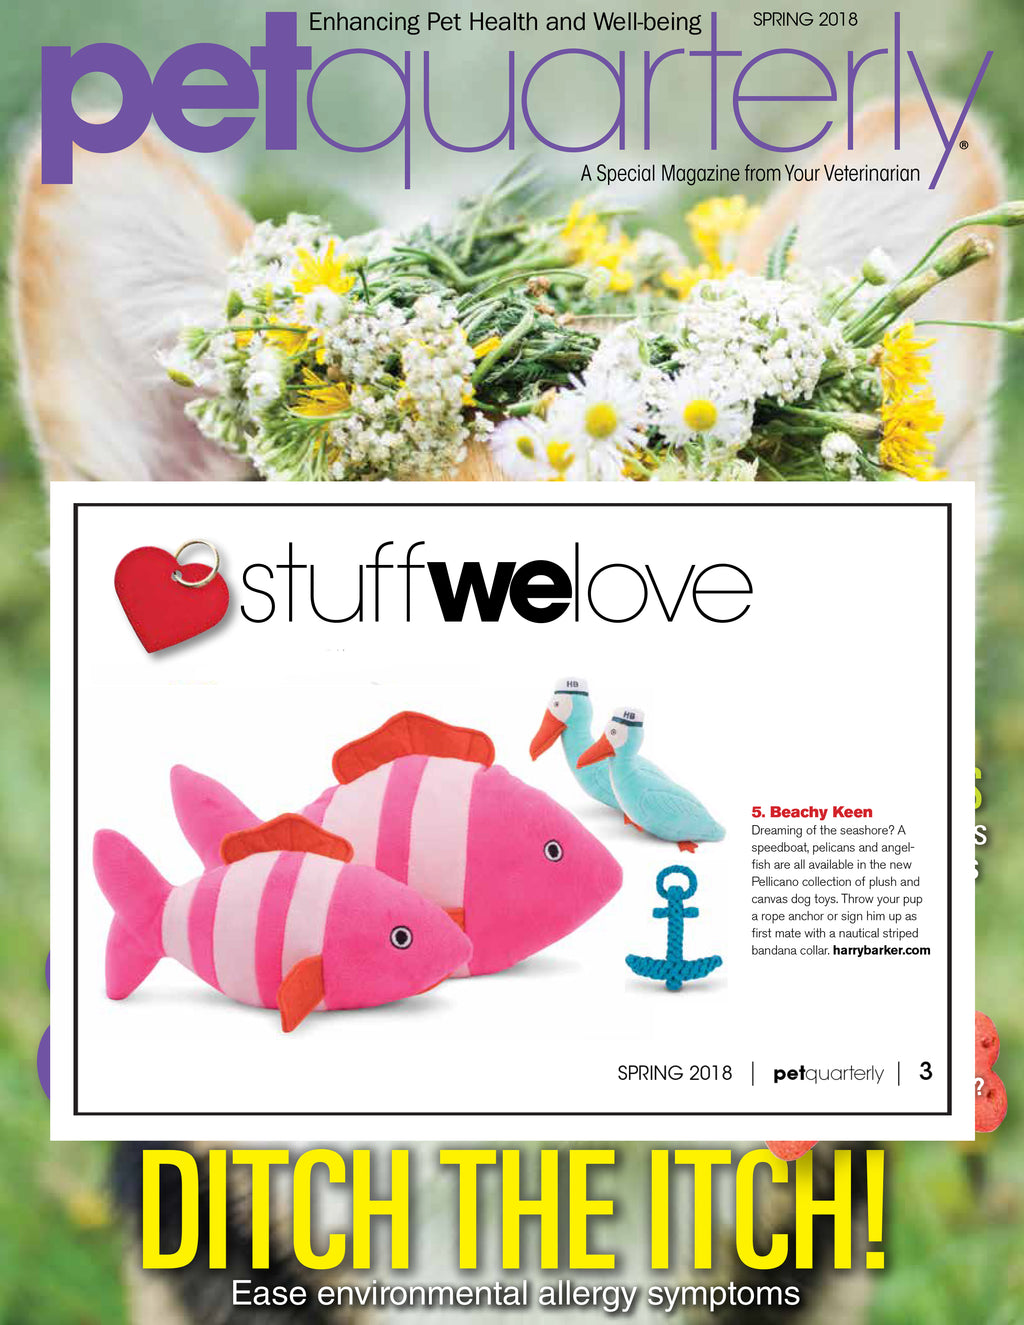 Pet Quarterly Spring 2018